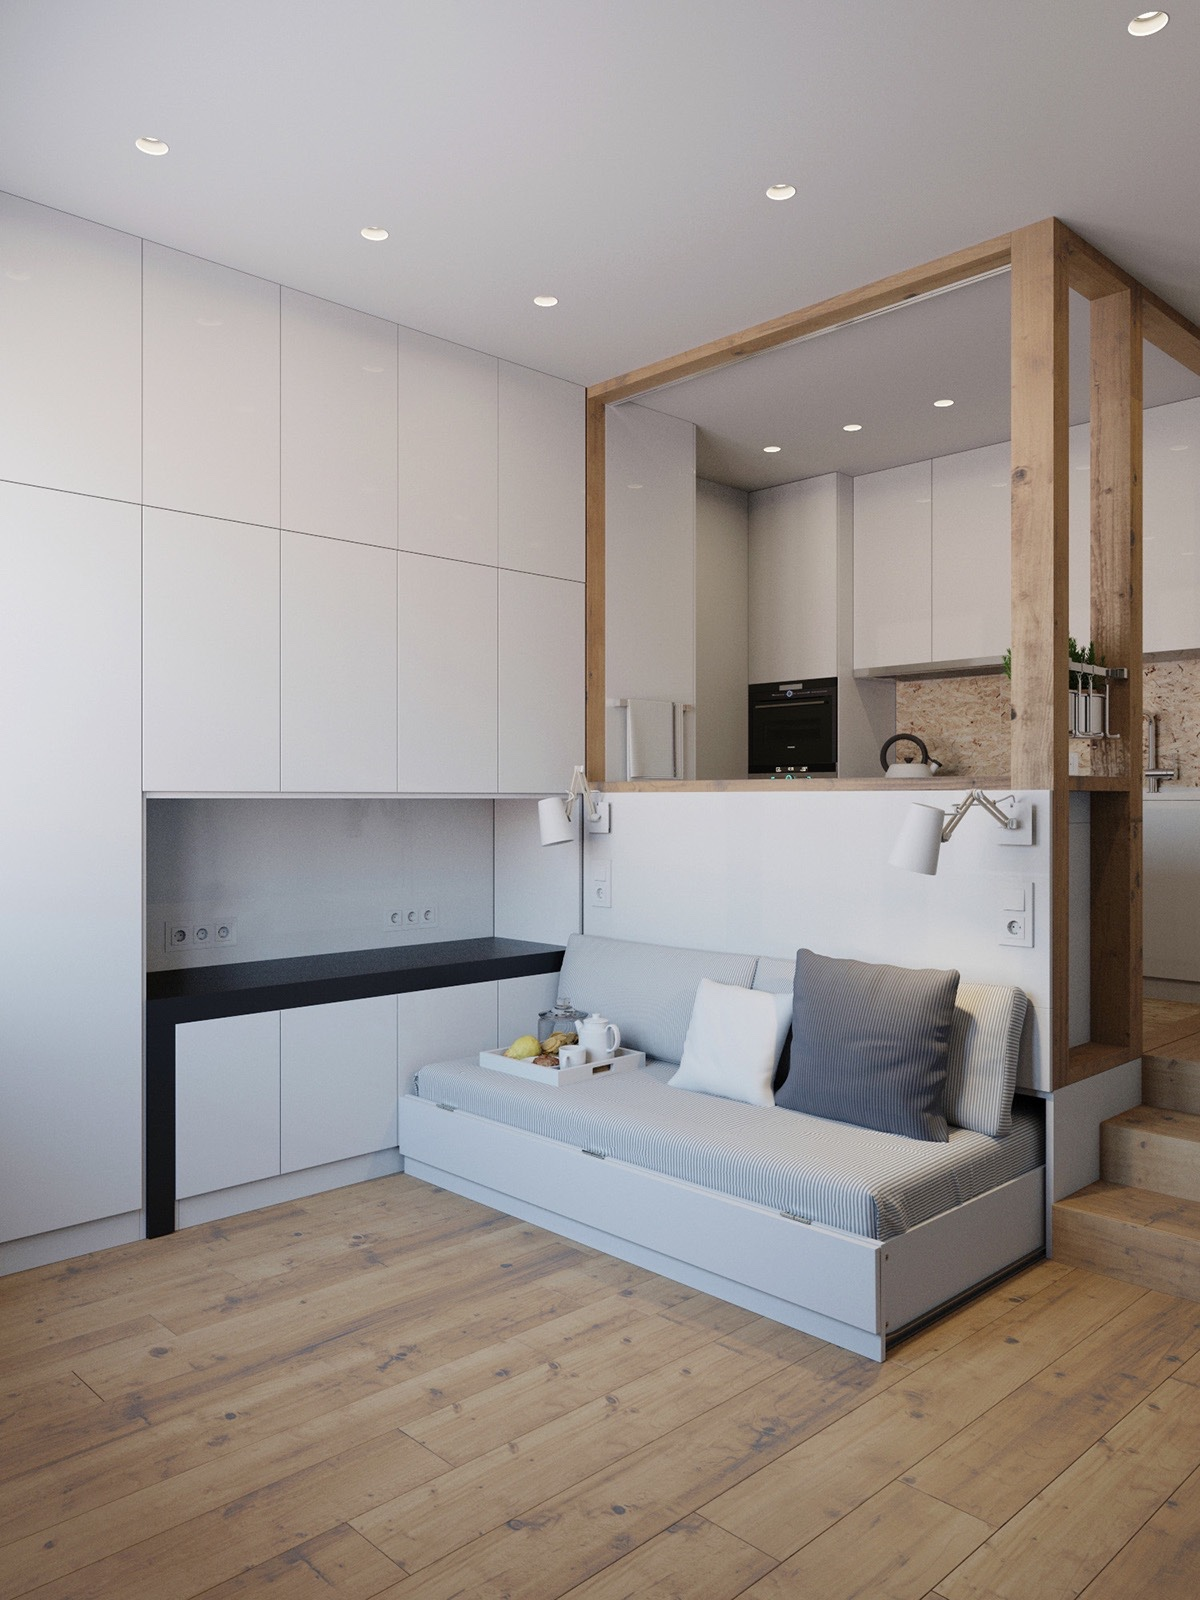 Storage friendly TV cabinet box design living area and kitchen